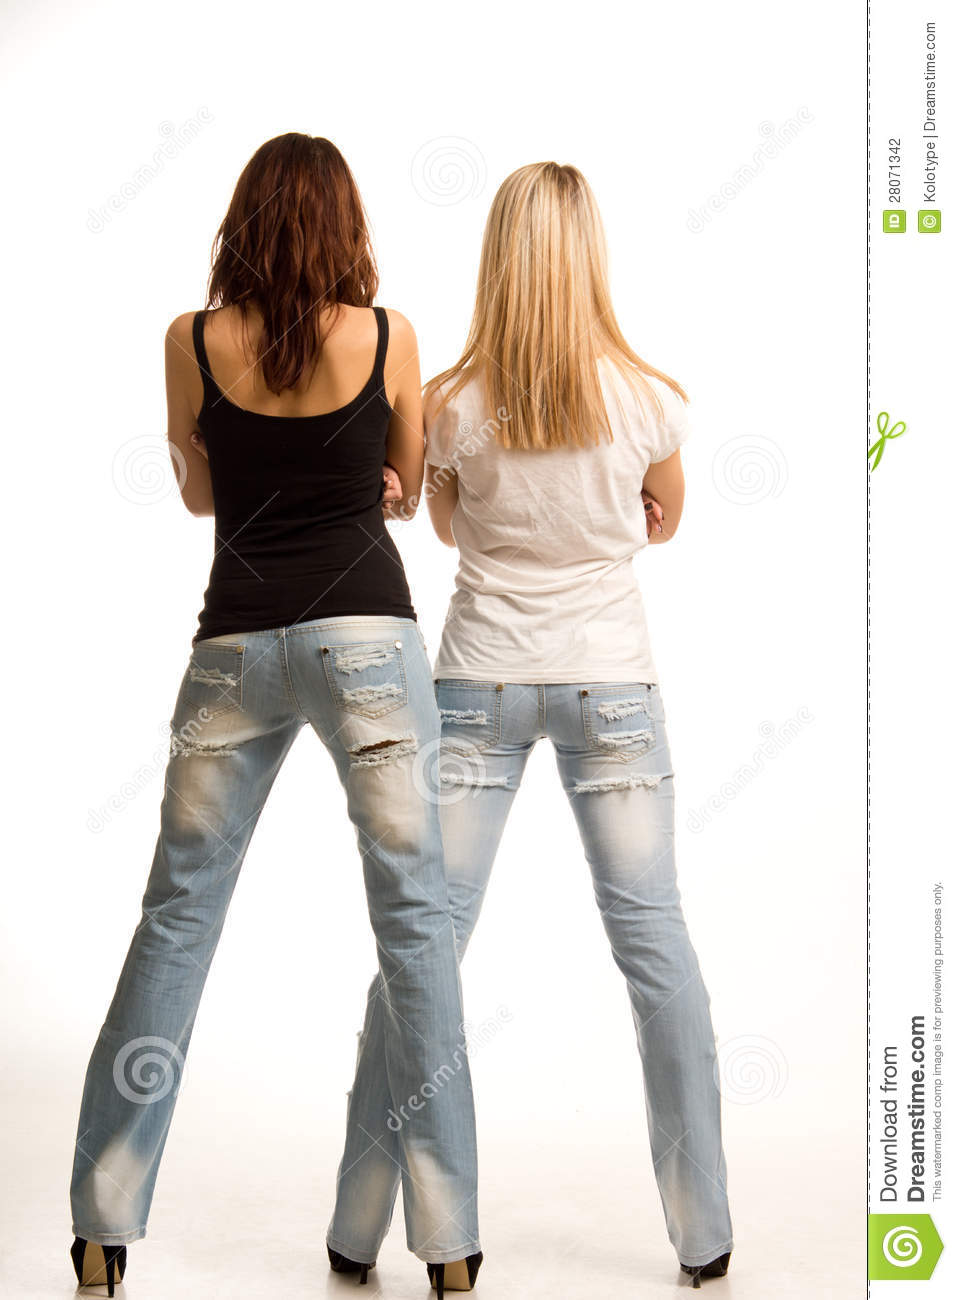 Back View Of Two Girls Stock Photography - Image 28071342-9317